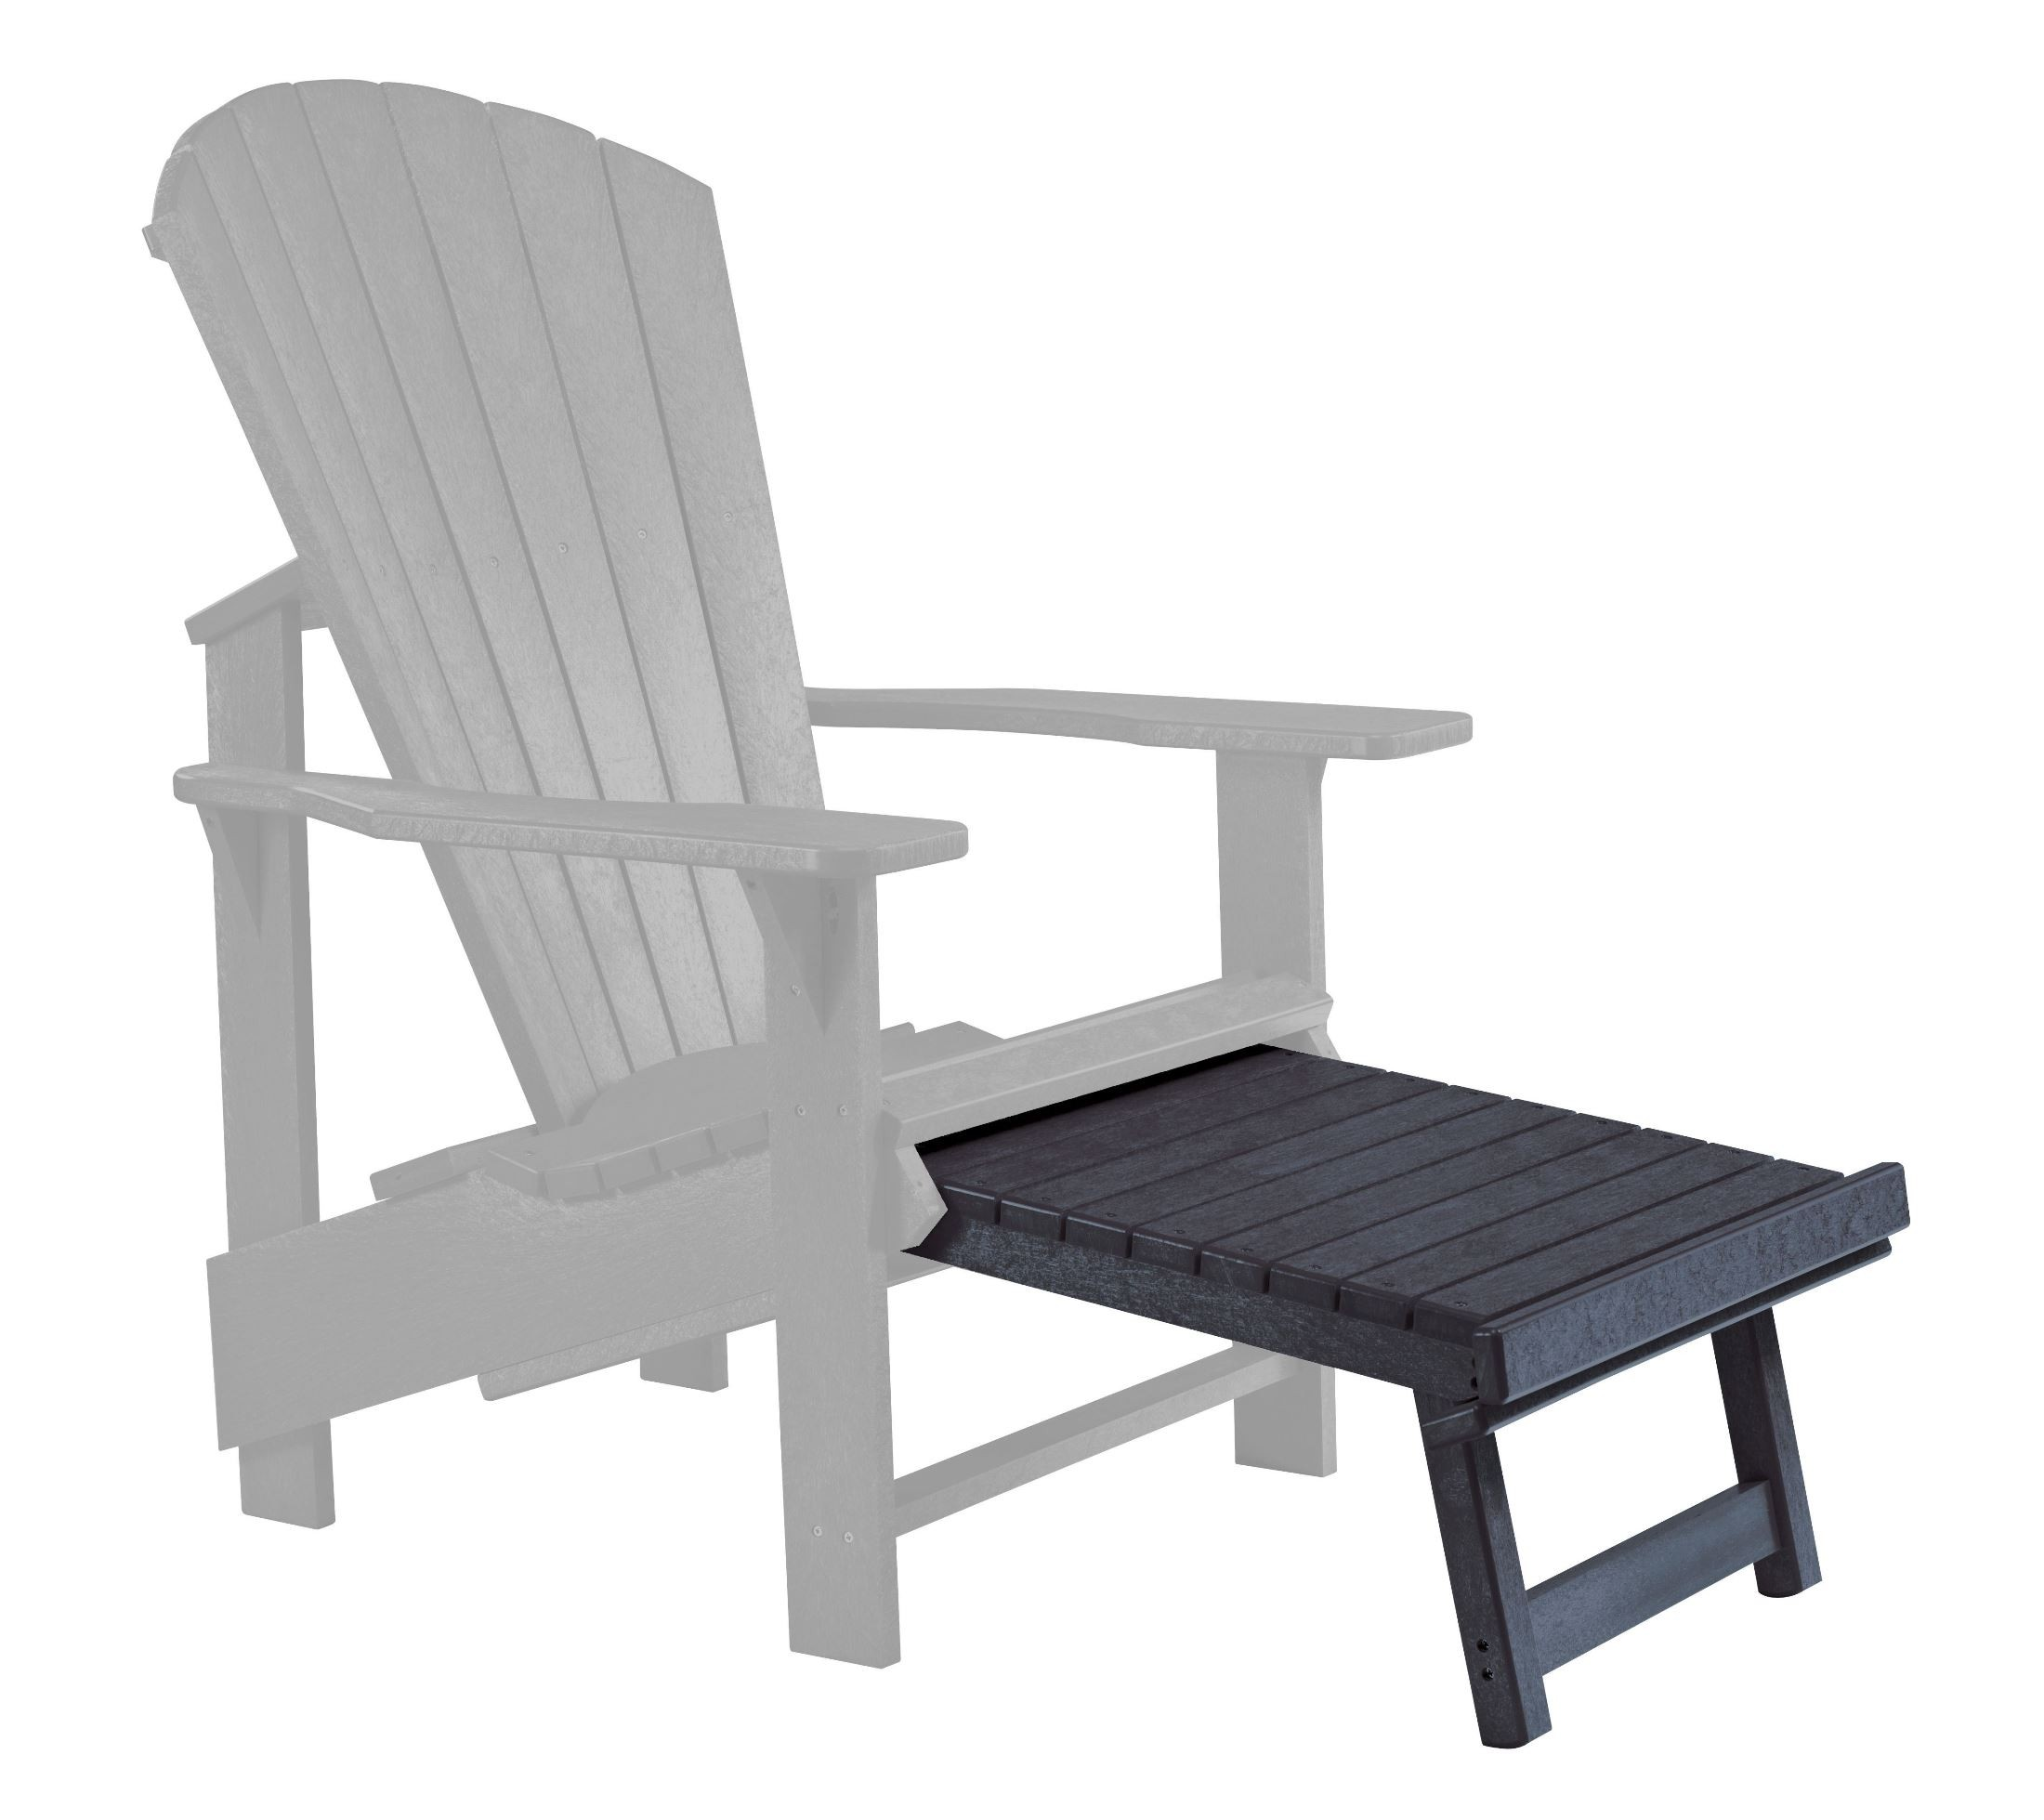 Generations Black Upright Adirondack Chair Pull Out